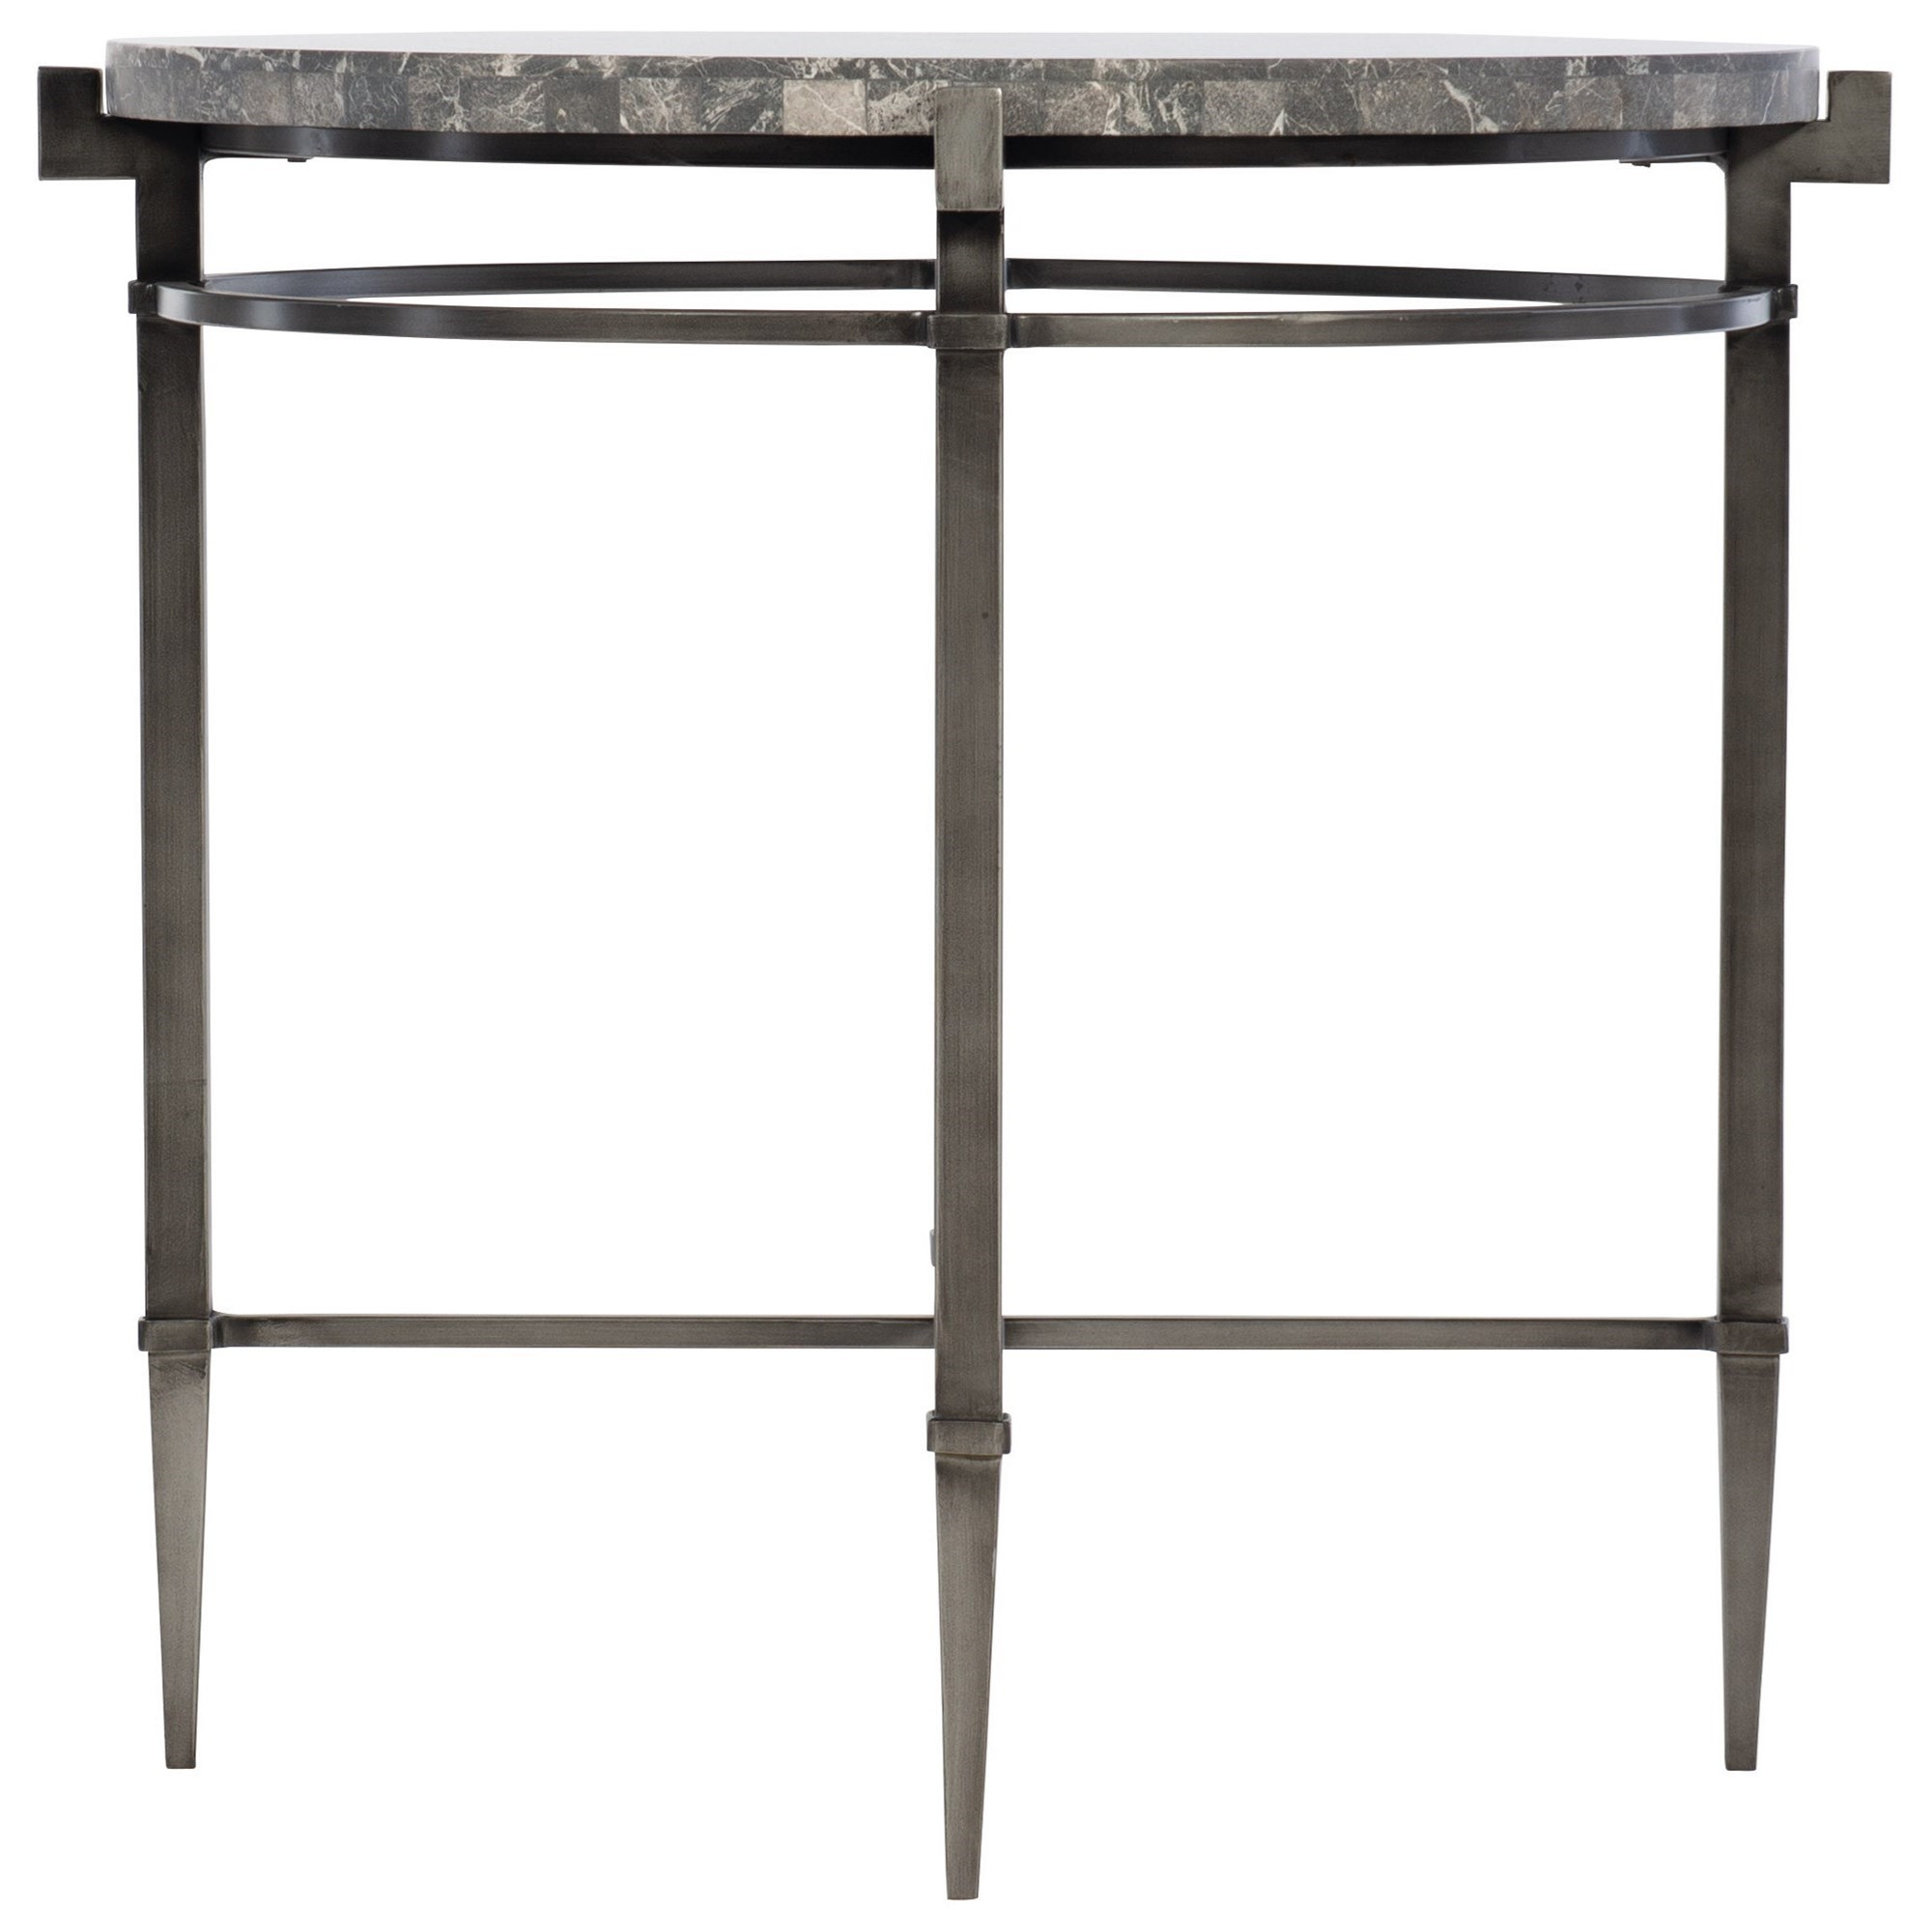 Mariposa Round End Table by Bernhardt at Baer's Furniture